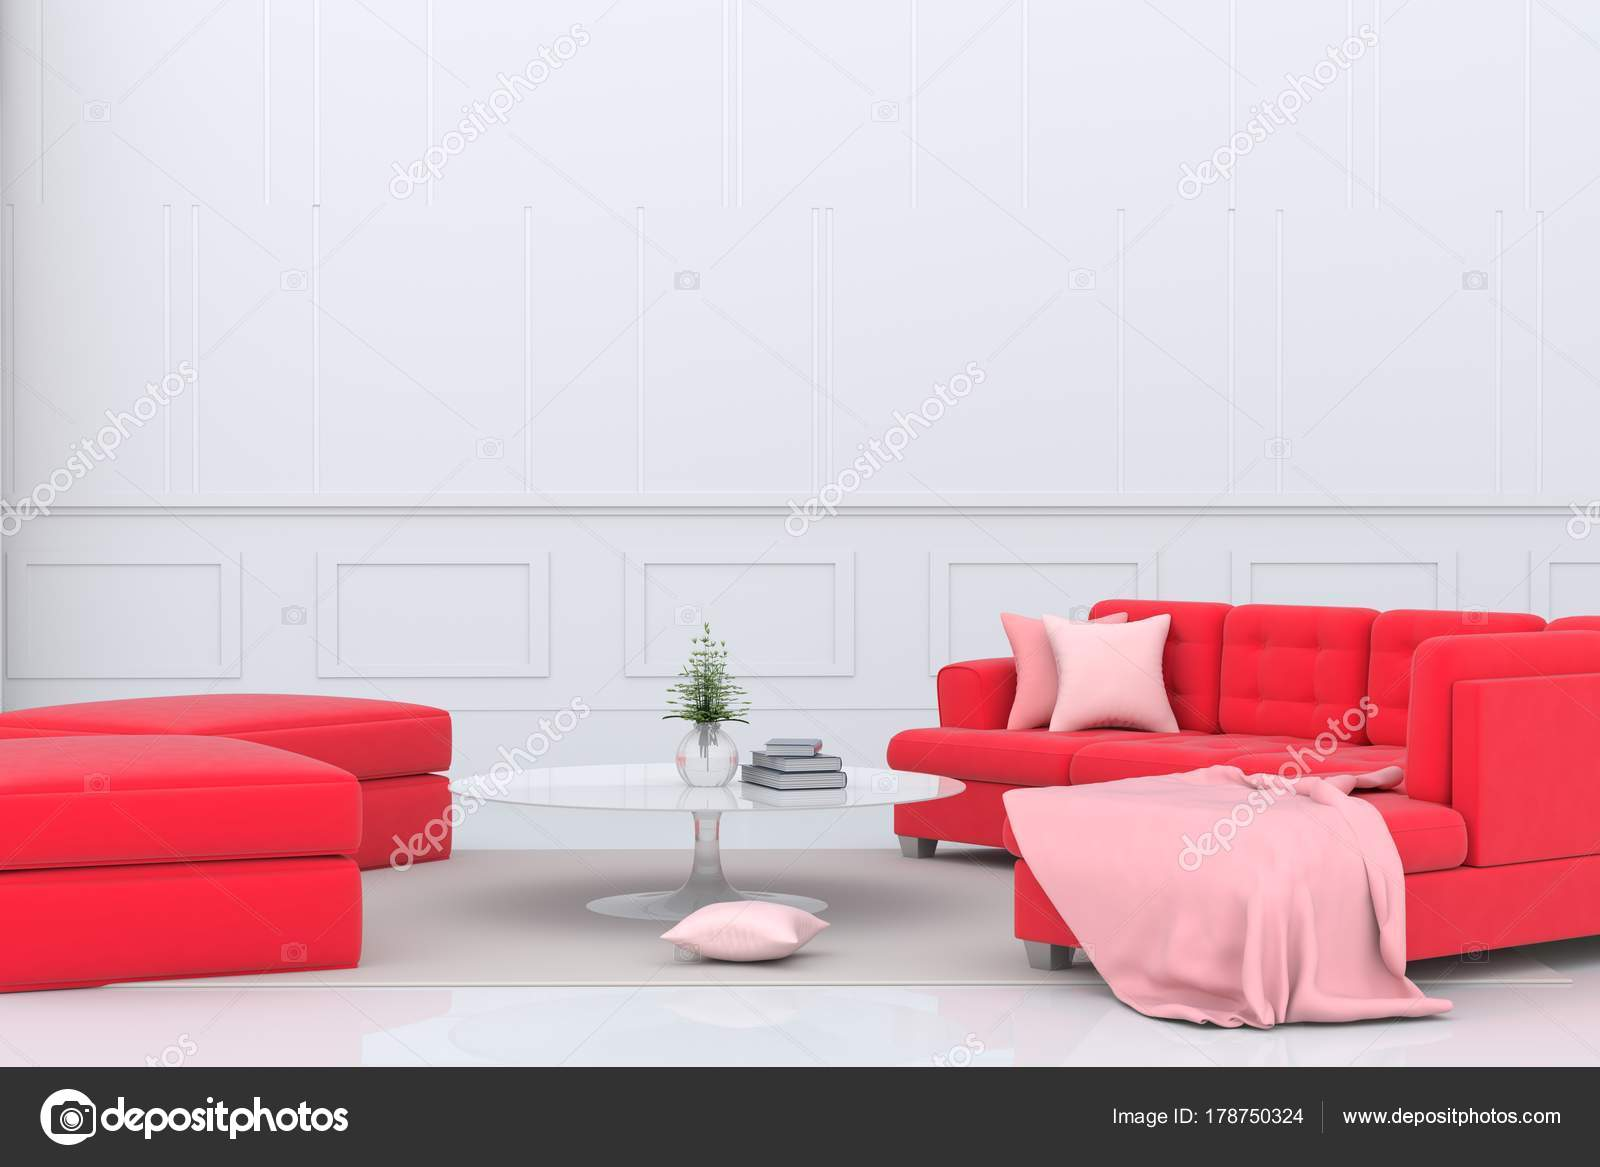 Living Room Valentine Day Decor Red Sofa Pink Fabric Pillow — Stock ...